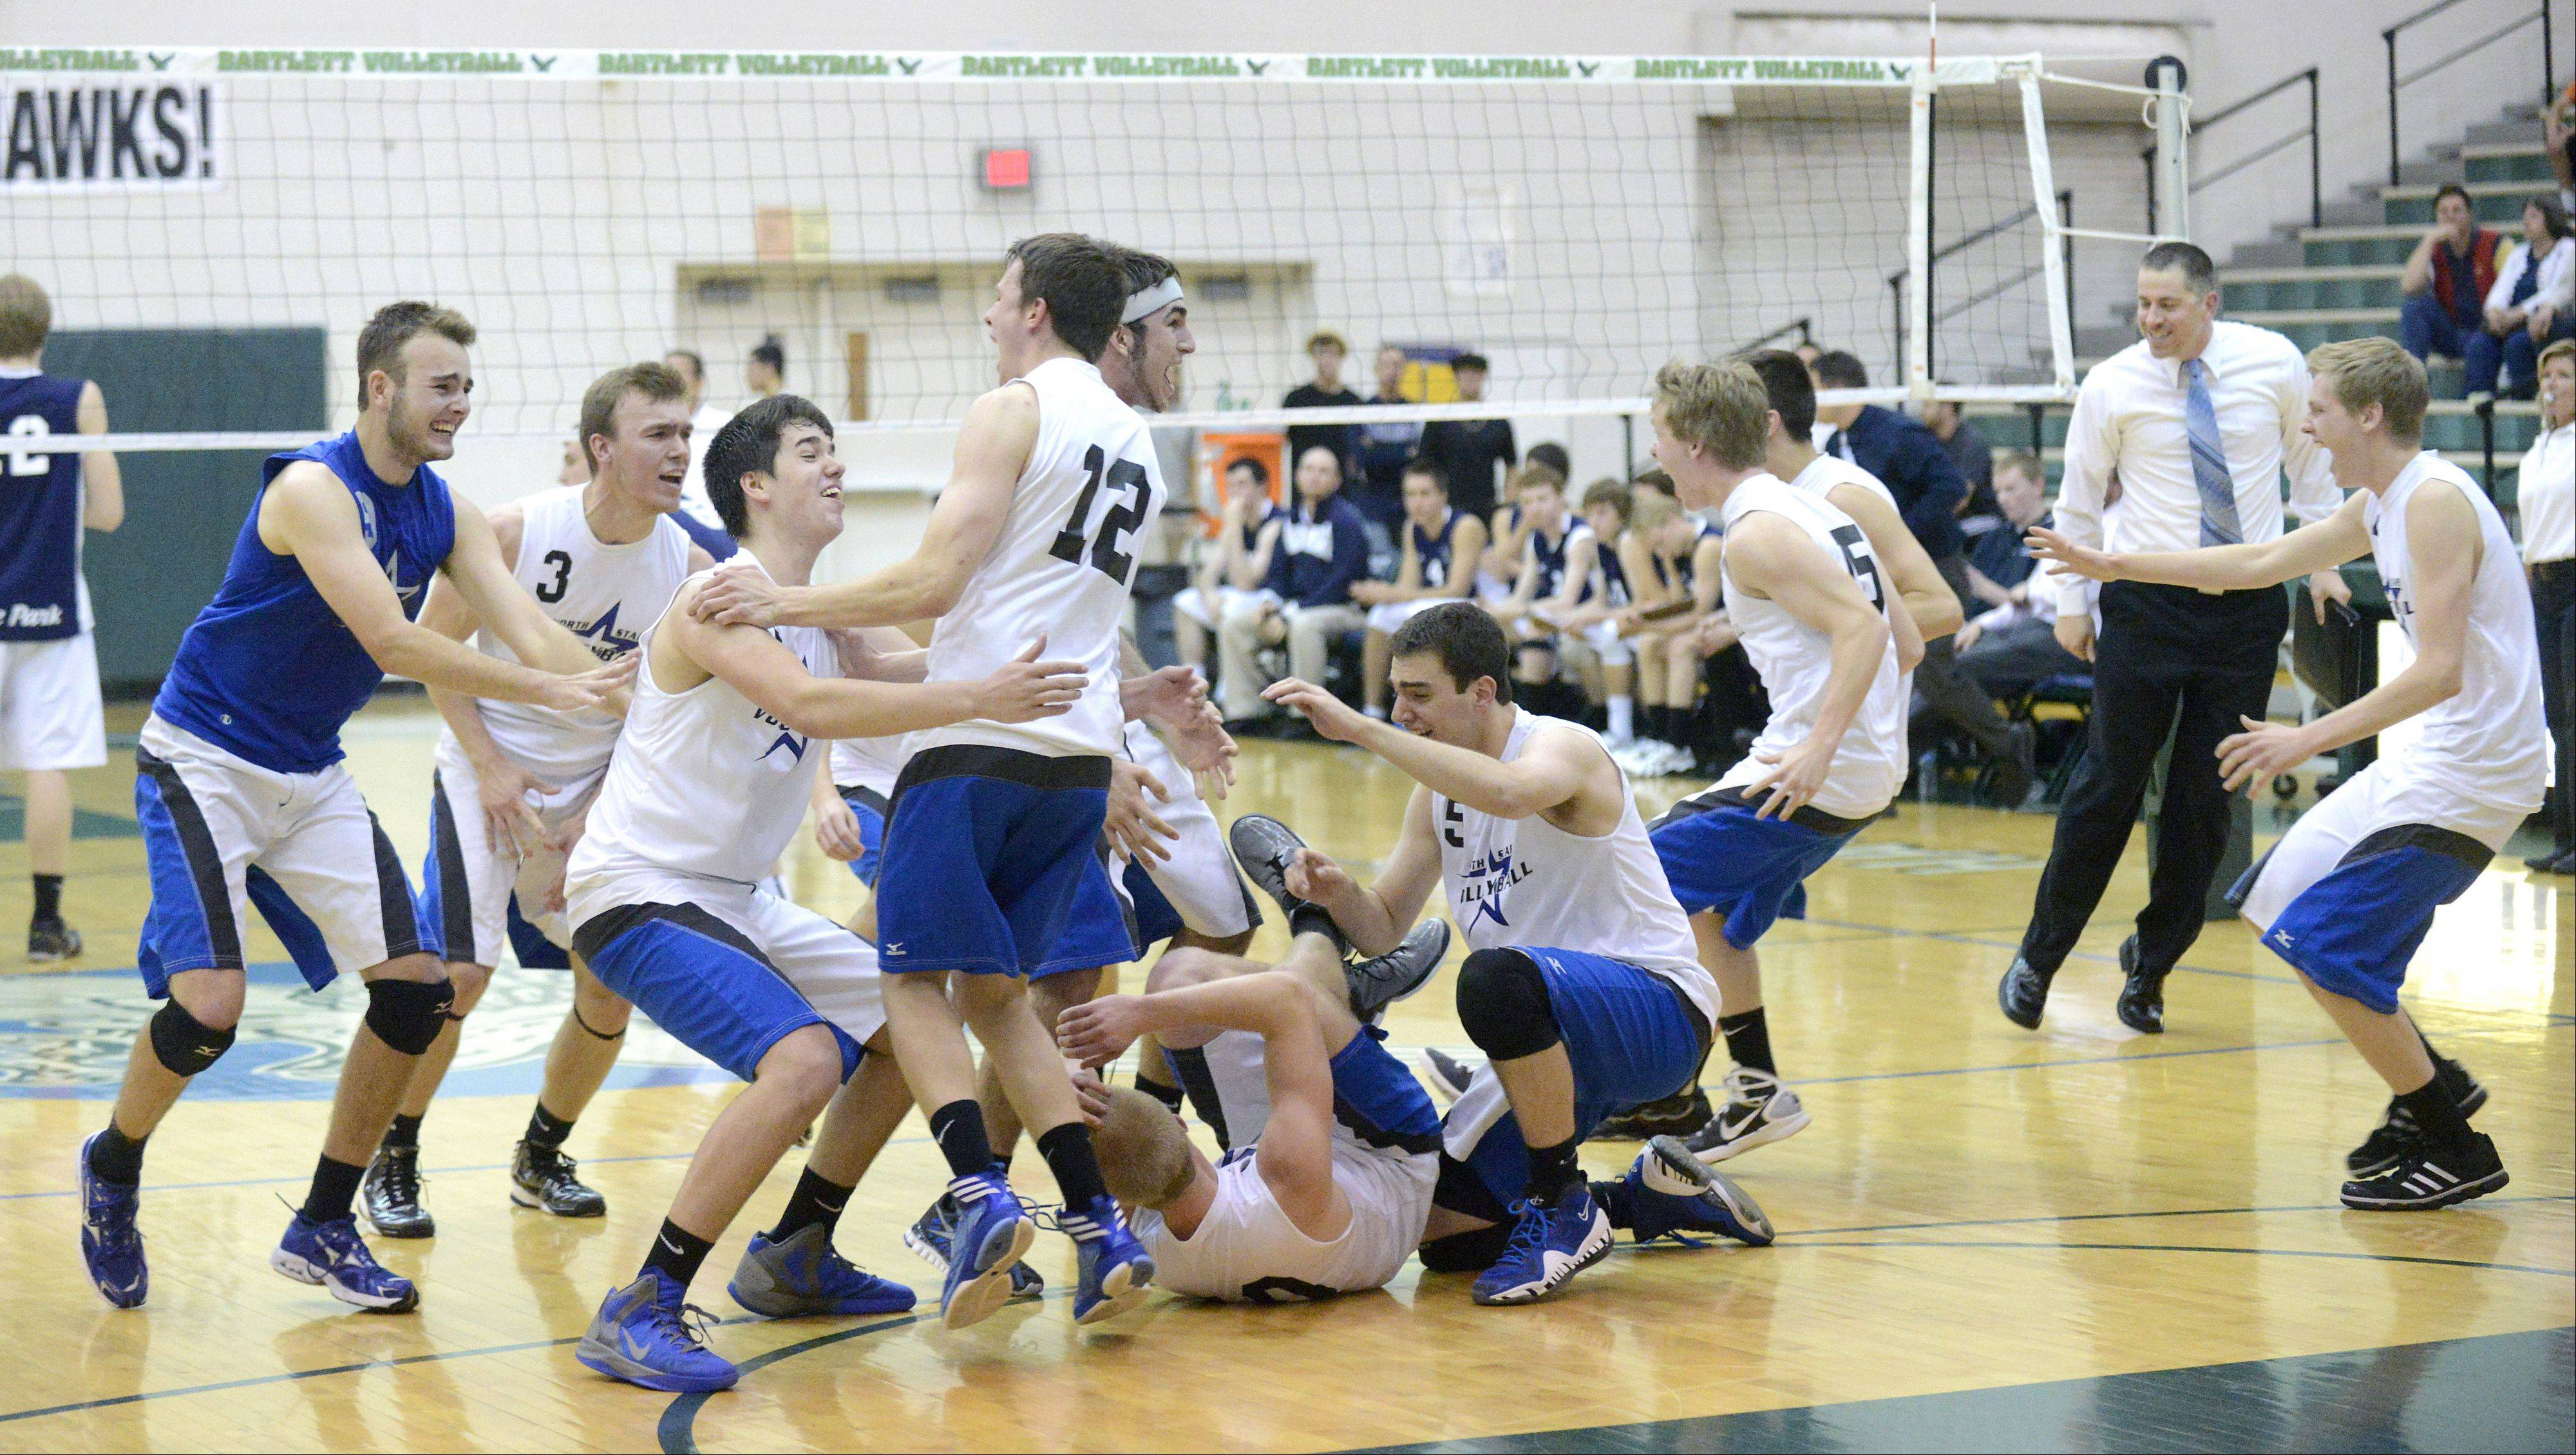 St. Charles North's Jack Harbaugh prepares to lift teammate Jake Hamilton (12) into the air as Kevin Beach rolls on the floor as the North Stars celebrate their sectional championship over Lake Park at Bartlett on Tuesday.